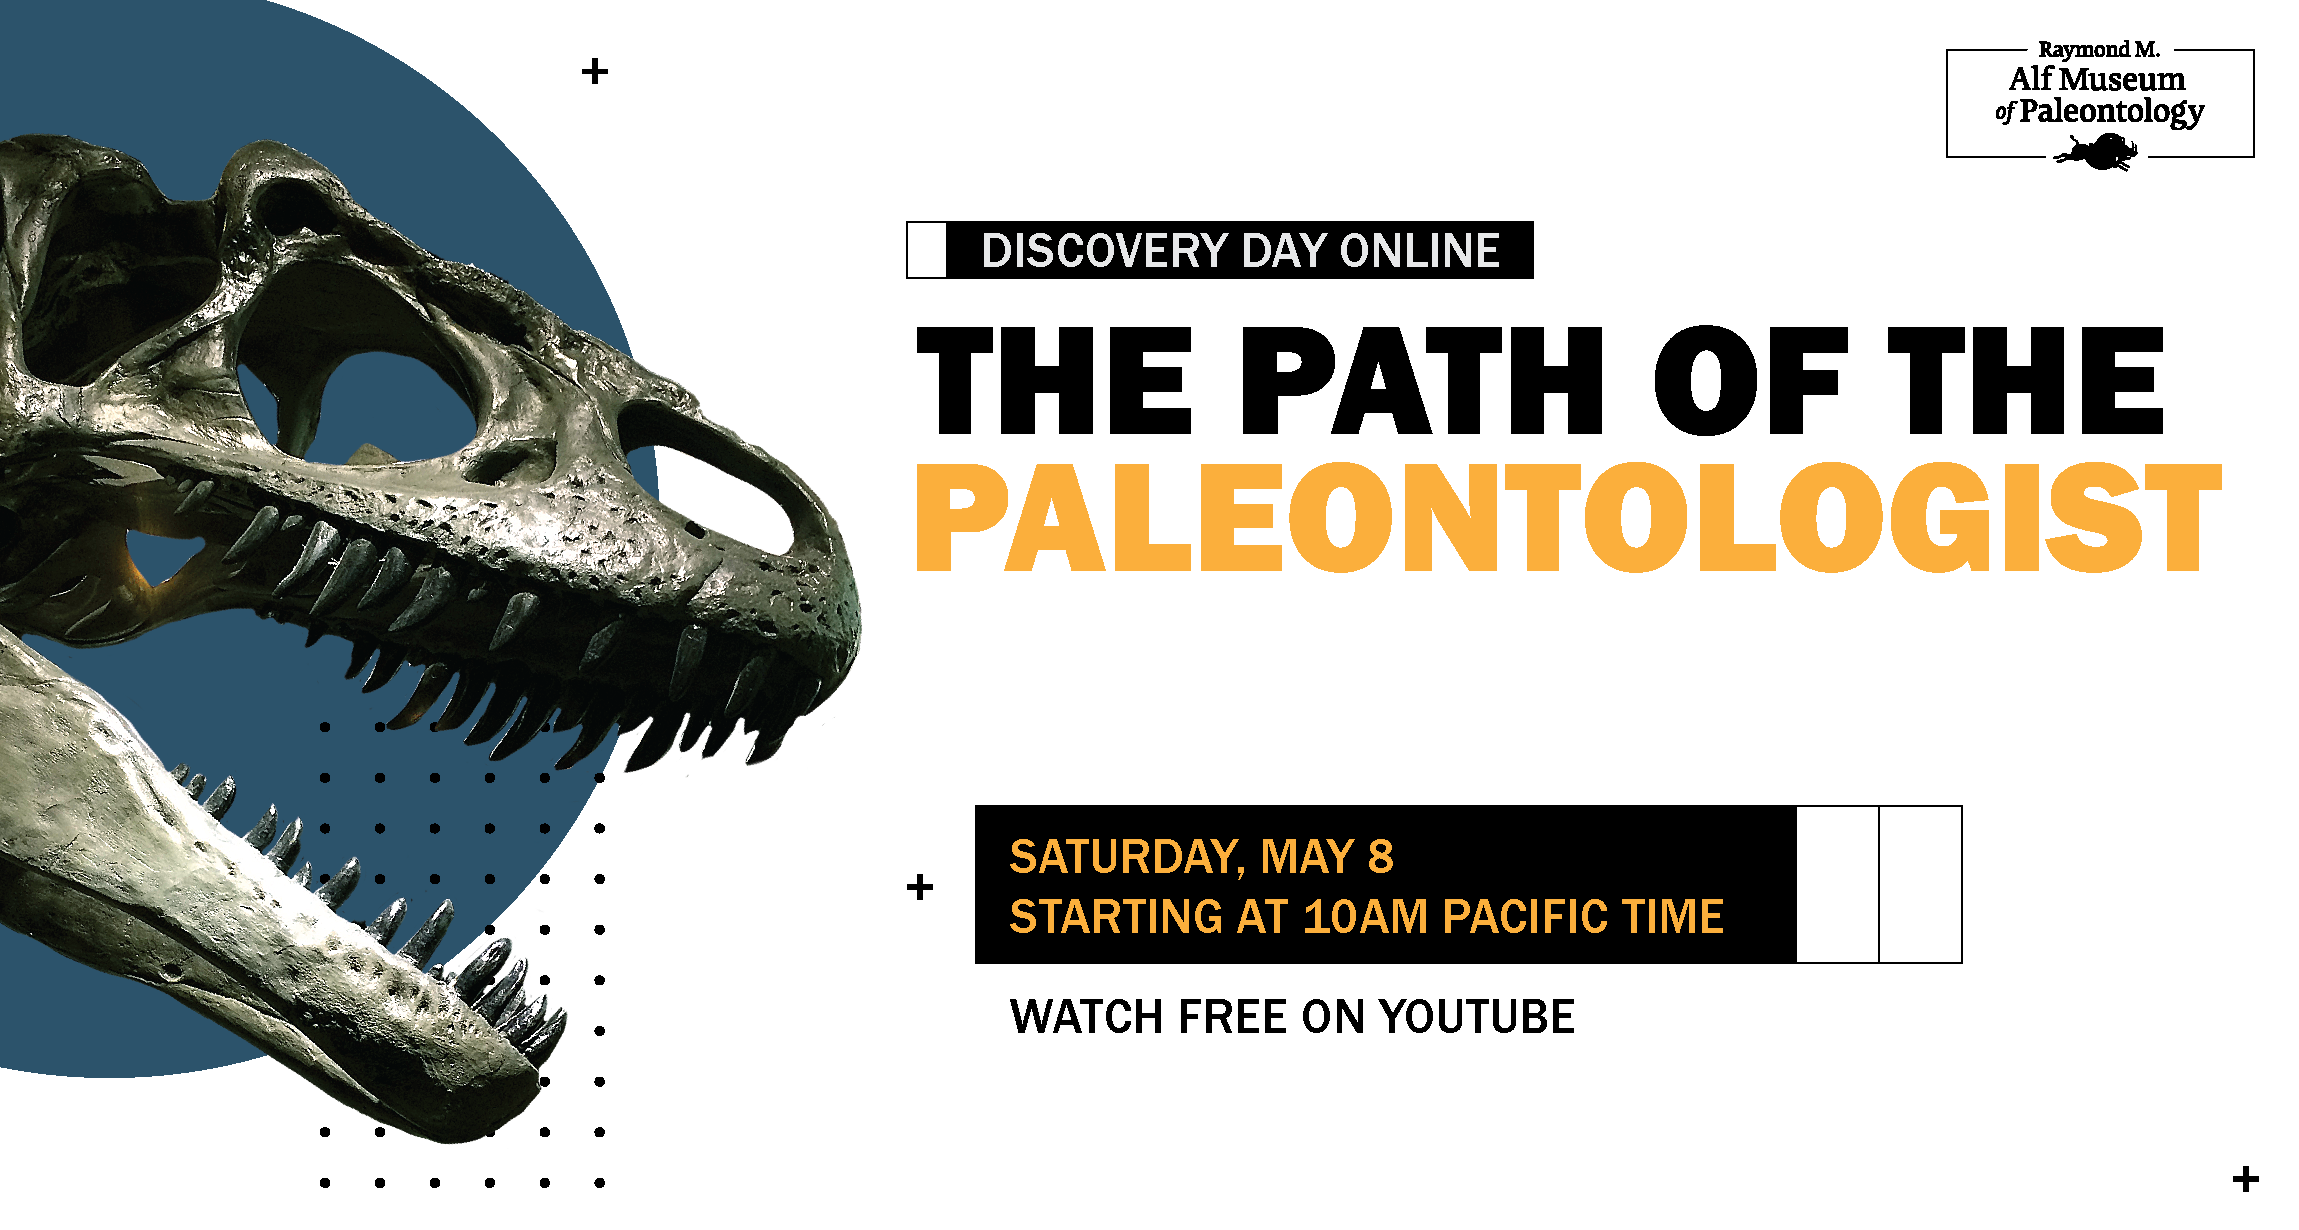 Graphic with an Allosaurus skull coming out of the left side in front of a blue circle. Text to the right reads: Discovery Day Online, The Path of the Paleontologist. Saturday, May 8 at 10am Pacific Time. Watch free on YouTube.